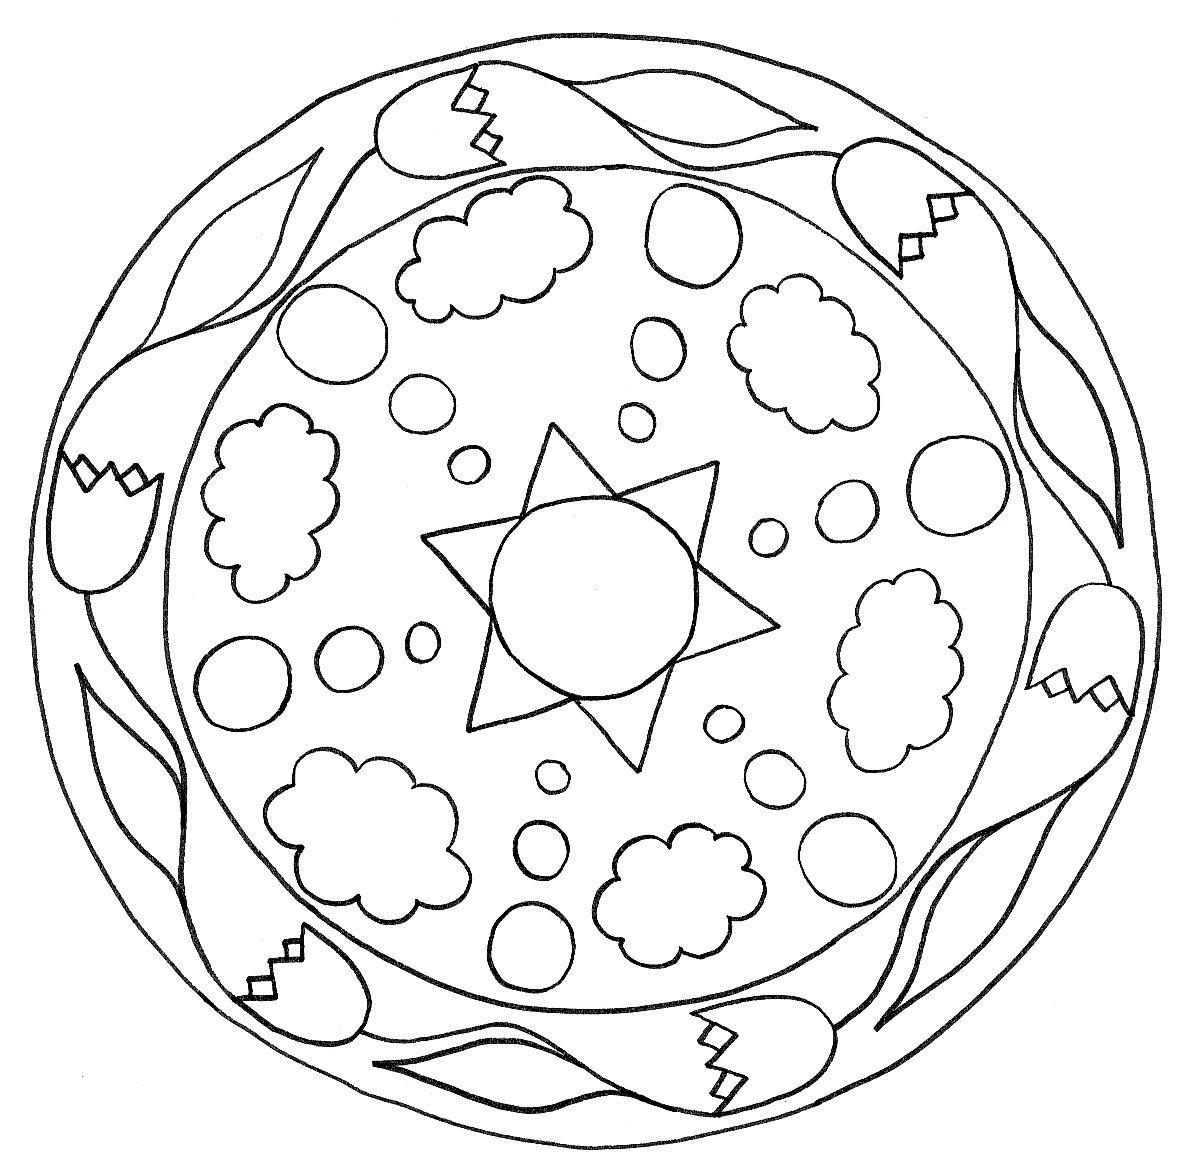 - Free Printable Mandalas For Kids - Best Coloring Pages For Kids